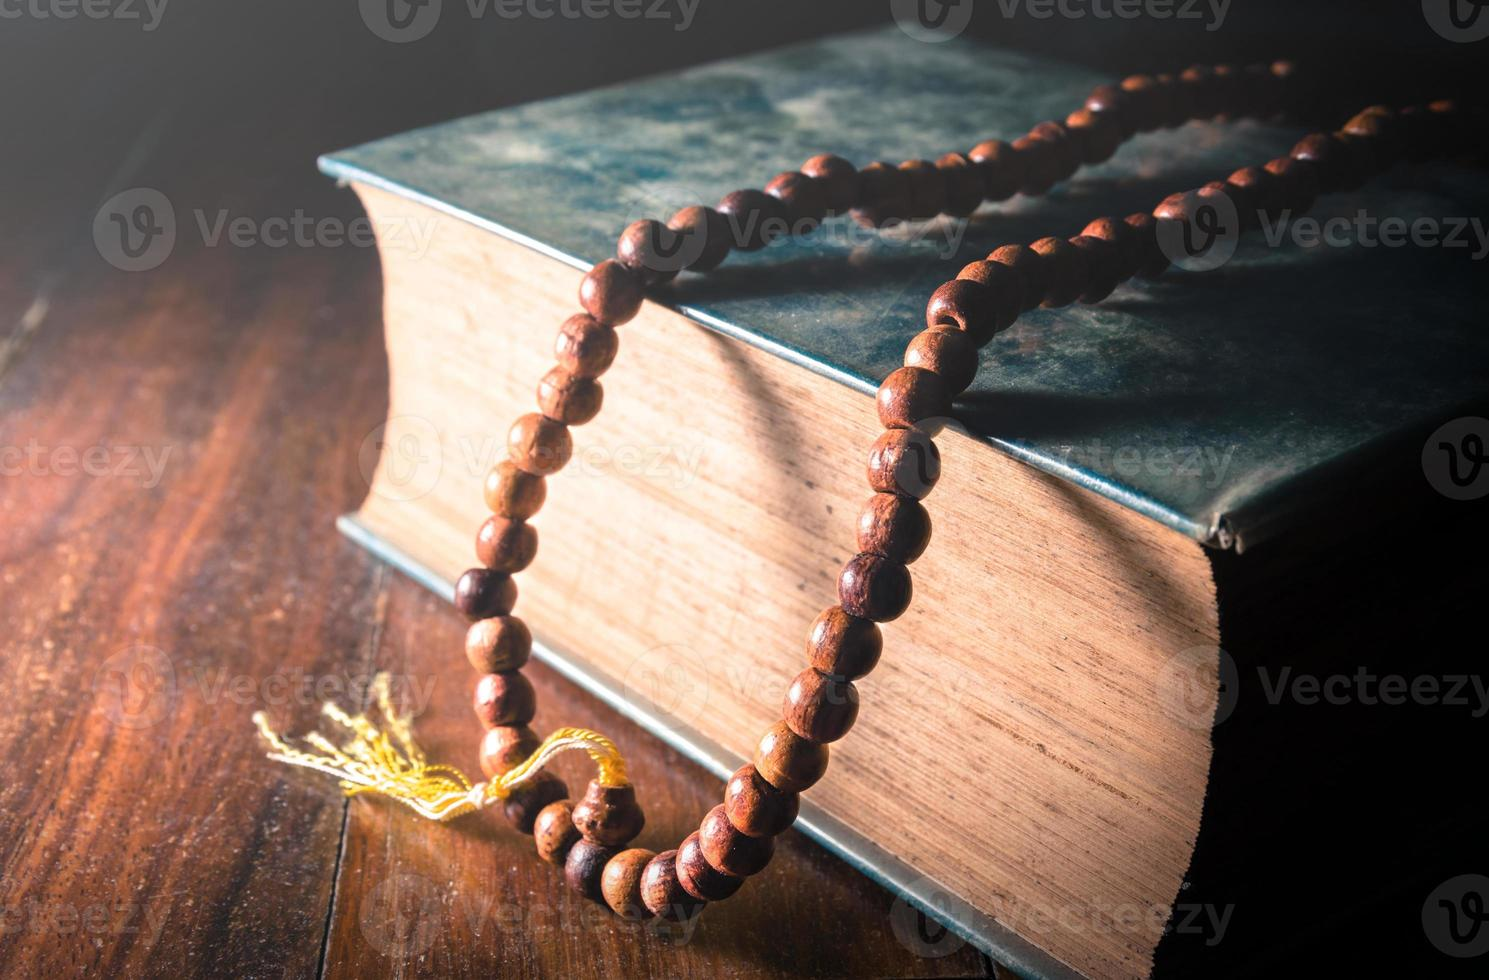 Vintage filtered of Necklace on book,religion background. photo